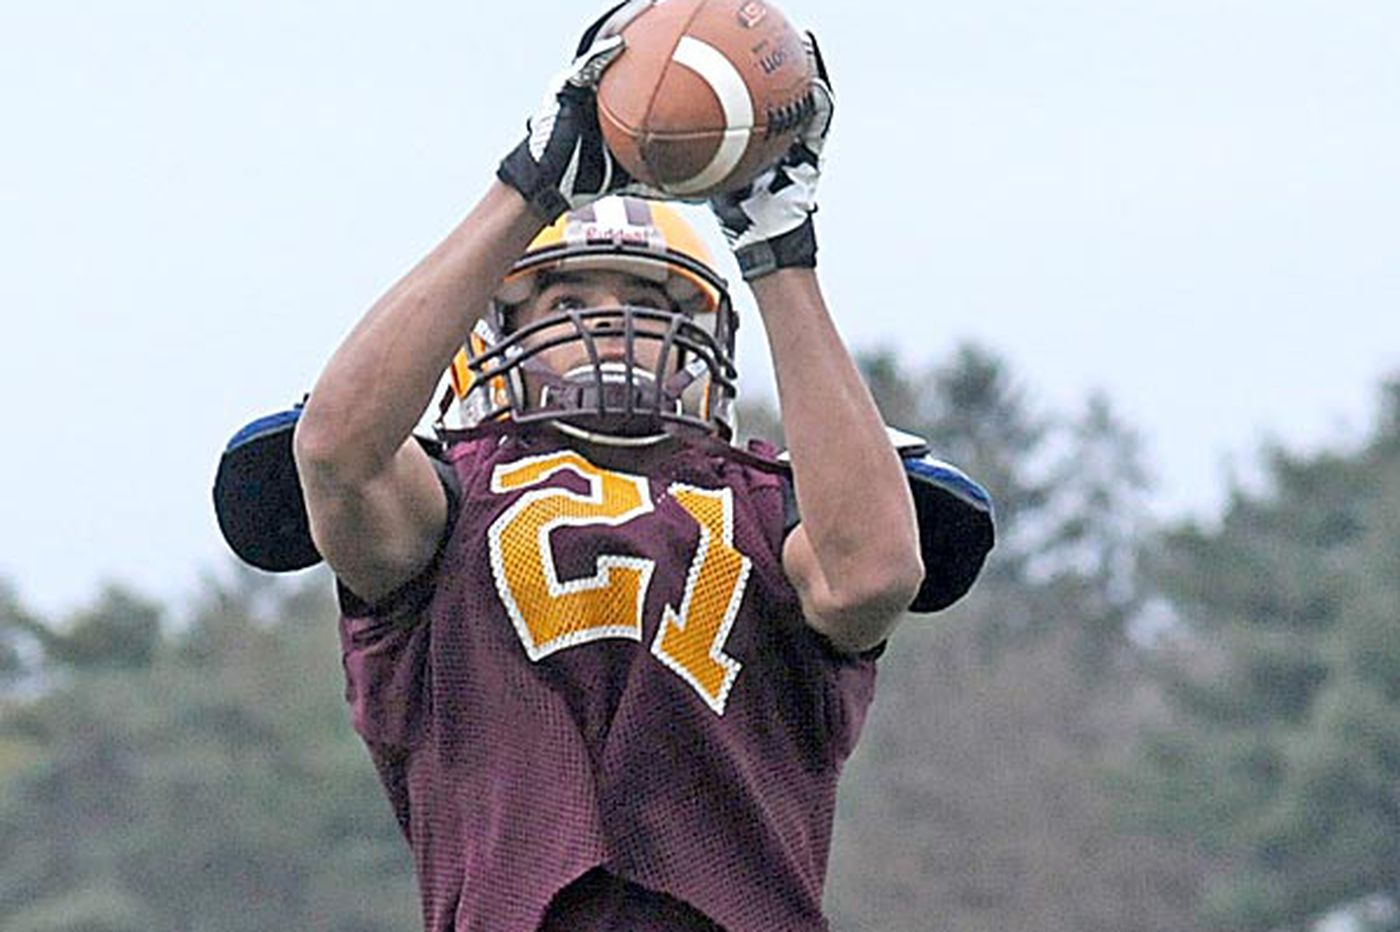 Glassboro's James out for bragging rights